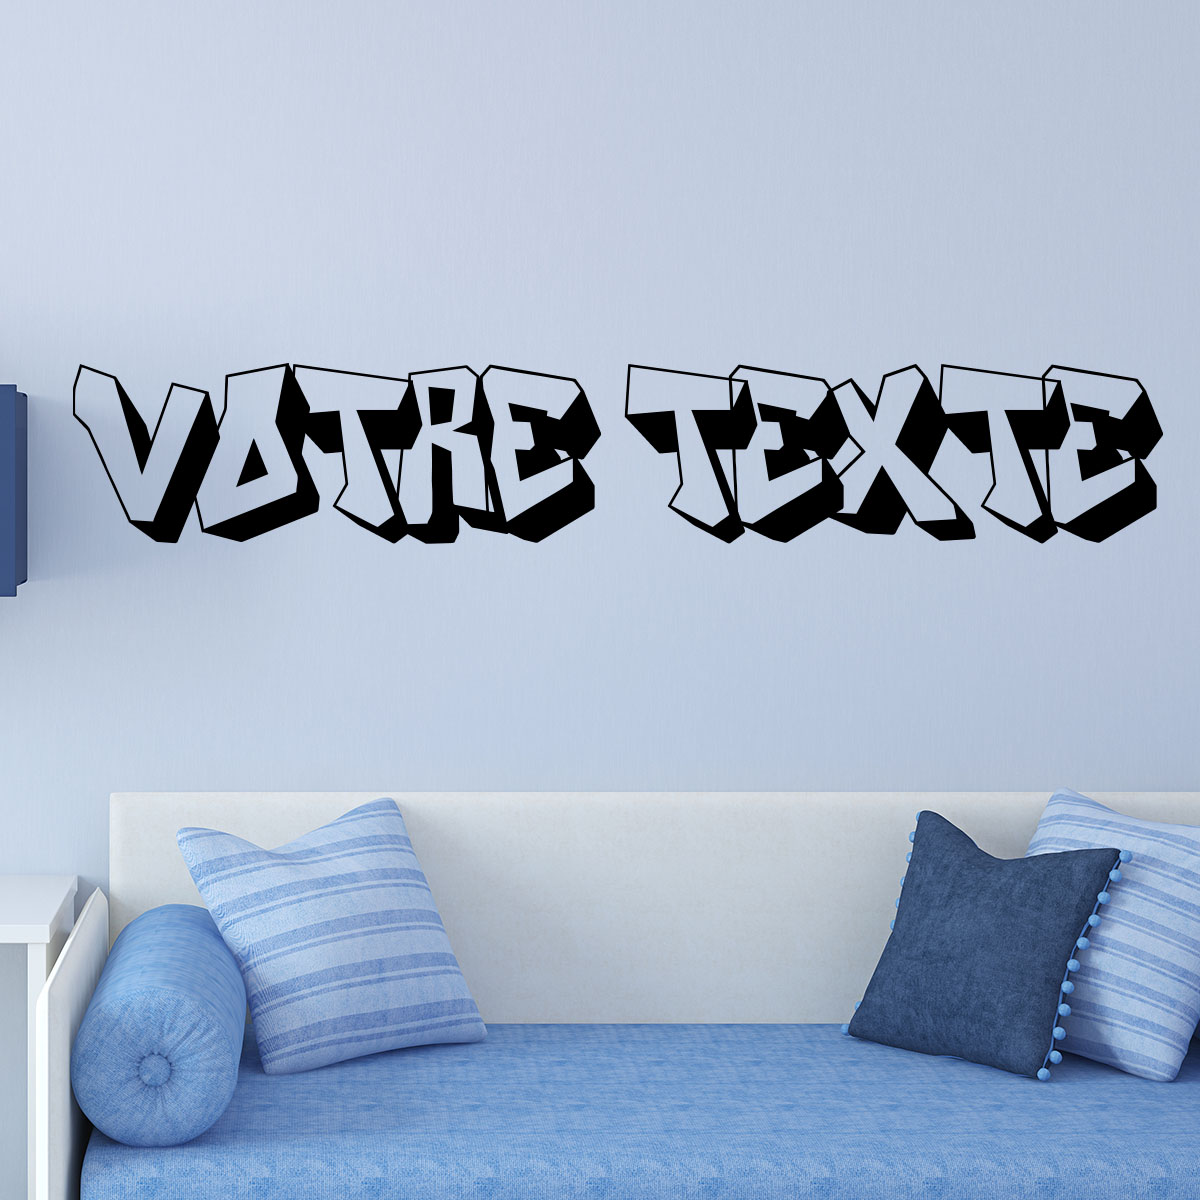 sticker texte personnalis graffiti stickers professionnels stickers vitrine magasin. Black Bedroom Furniture Sets. Home Design Ideas